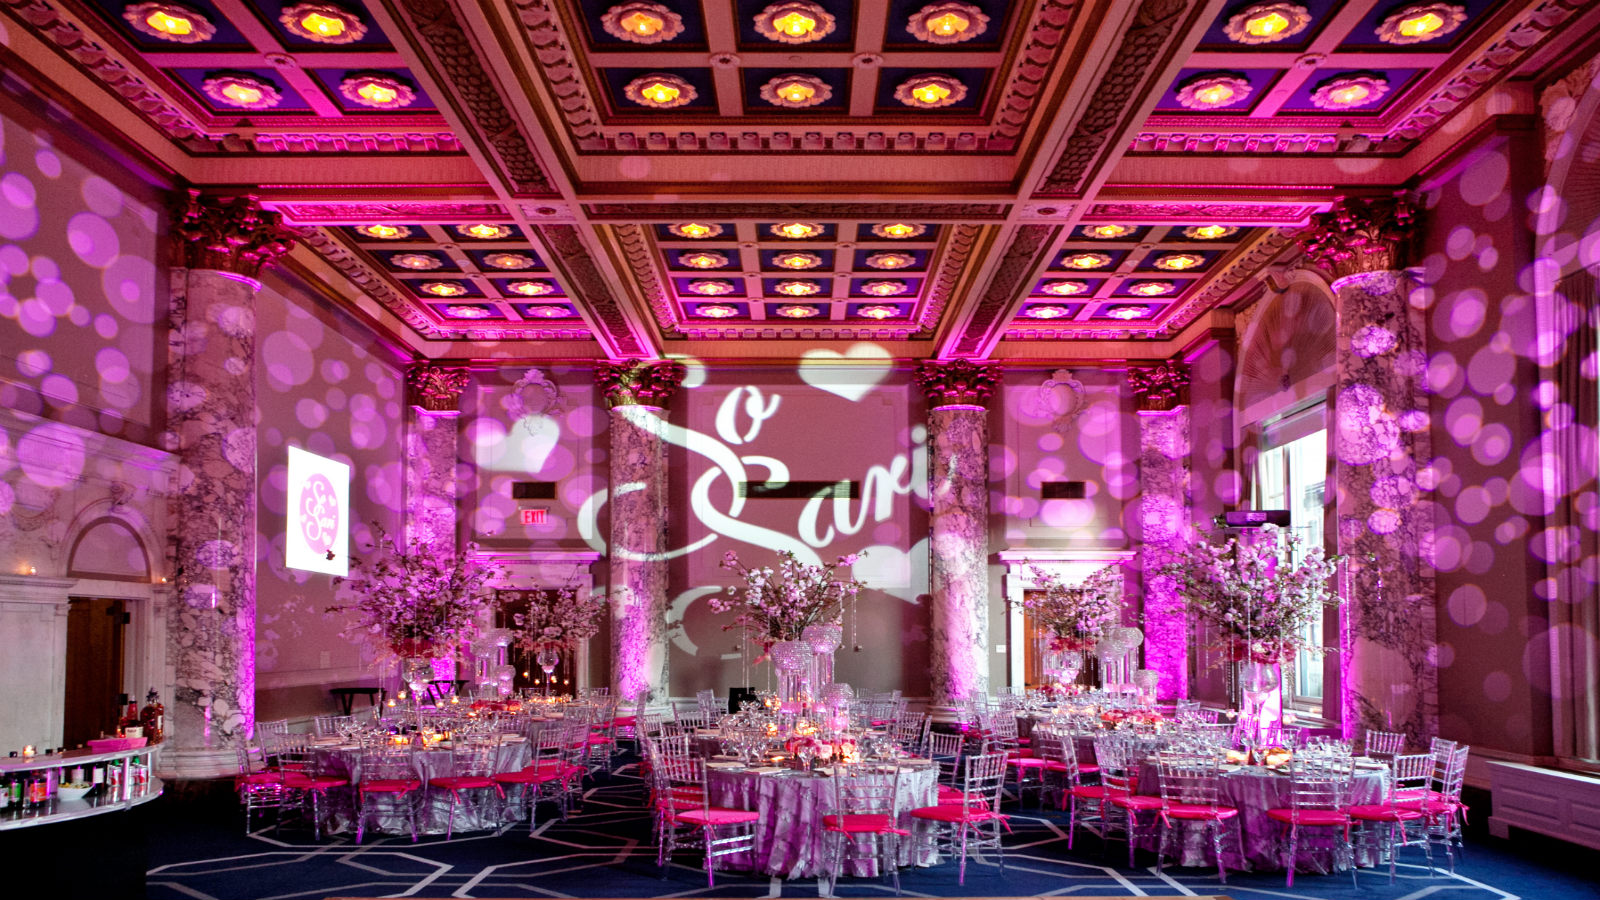 Tags bar and bat mitzvah event decor themes venues - Manhattan Wedding Venues Great Room W Union Square